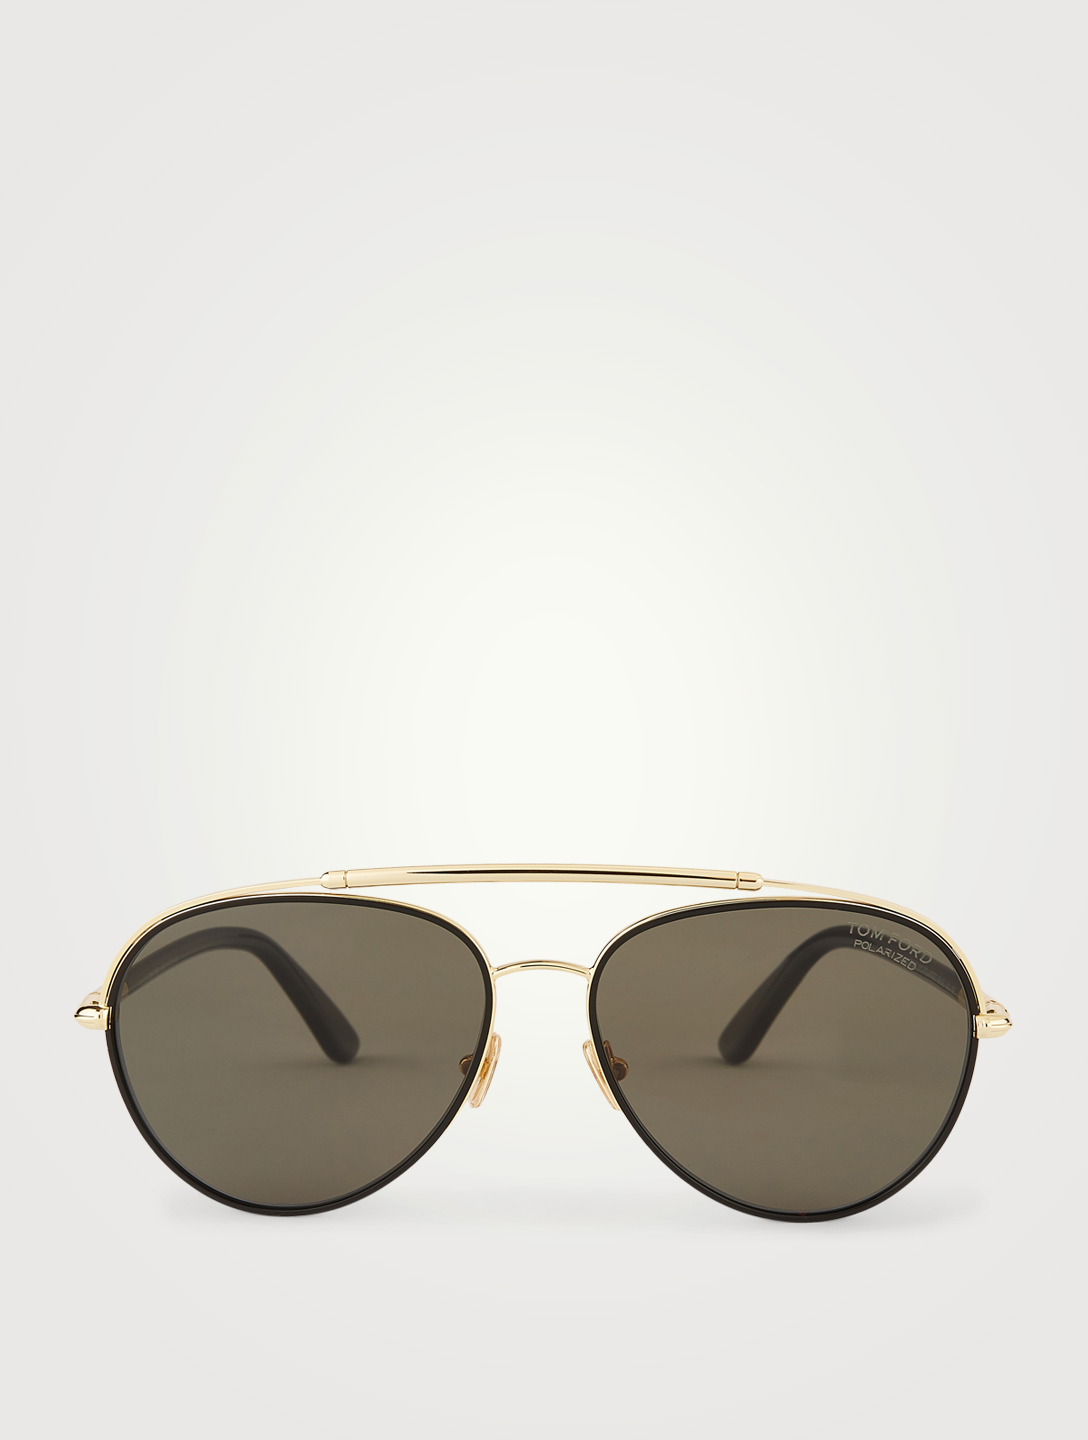 TOM FORD Curtis Aviator Sunglasses Men's Black